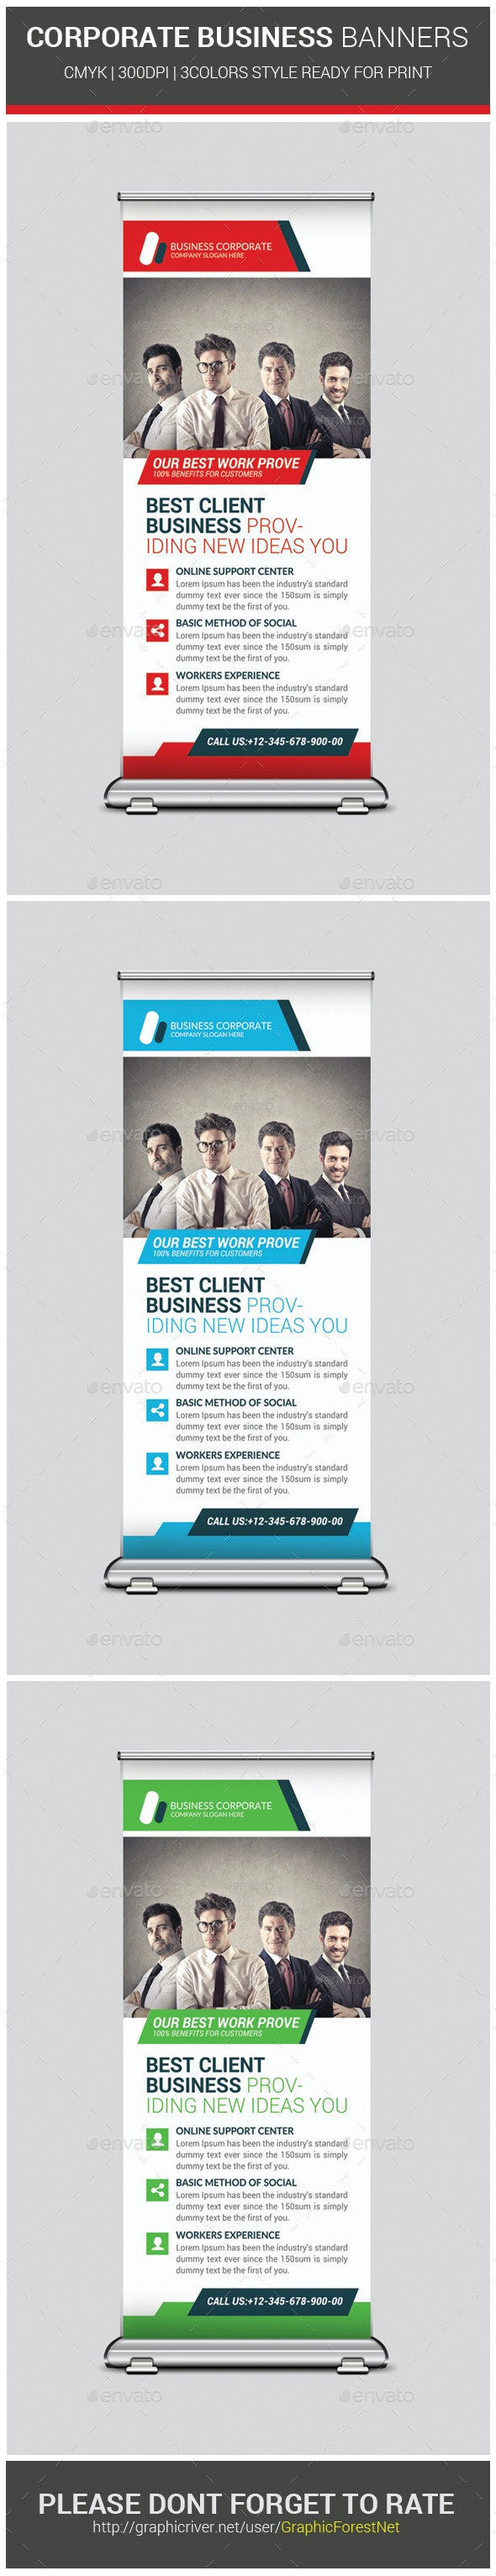 Corporate Agency Business Banners Template - Signage Print Templates